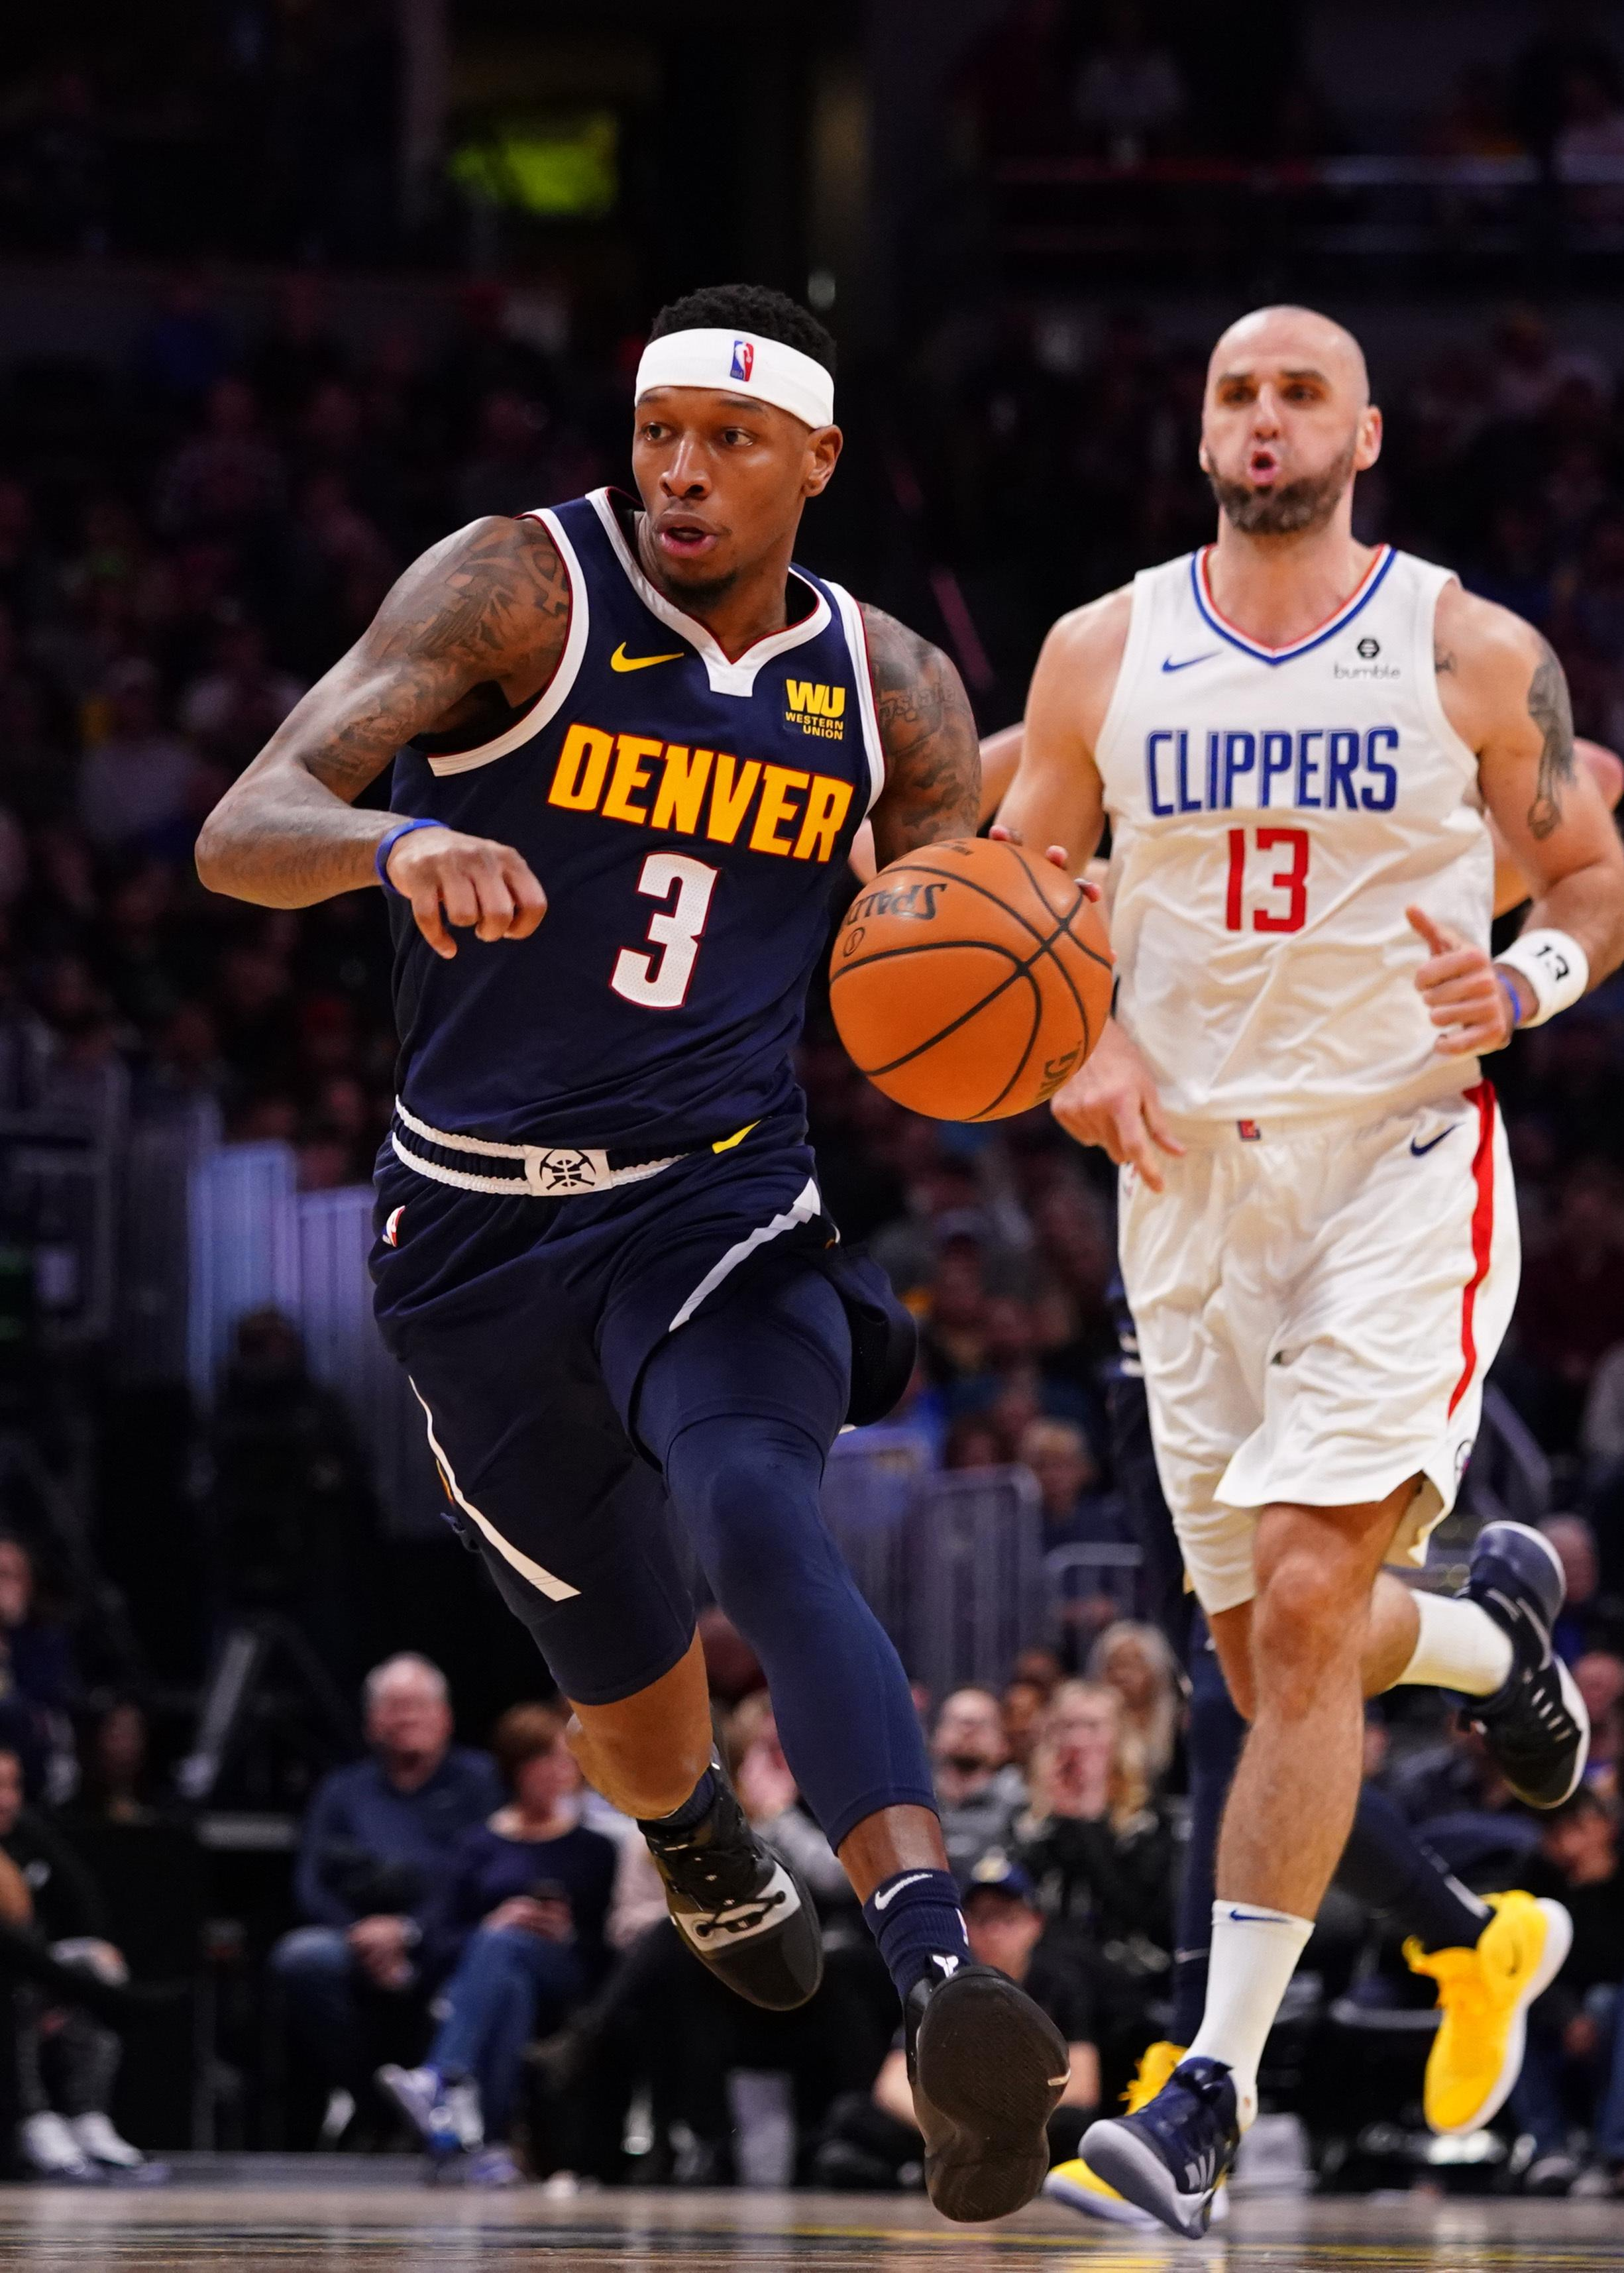 big sale d922f 968e8 Denver Nuggets guard Torrey Craig drives the court against the Los Angeles  Clippers during the third